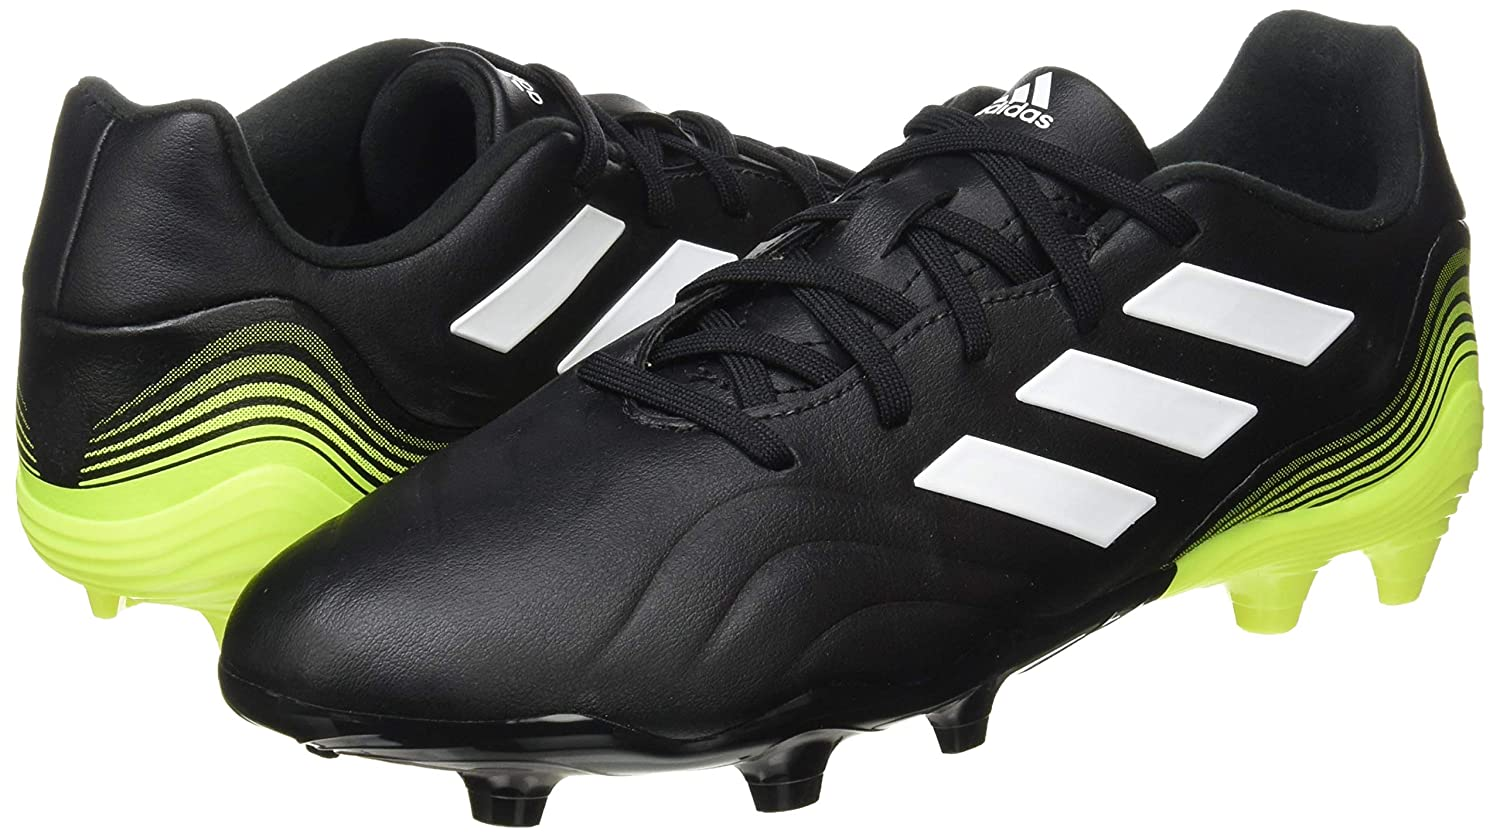 adidas football shoes for kids